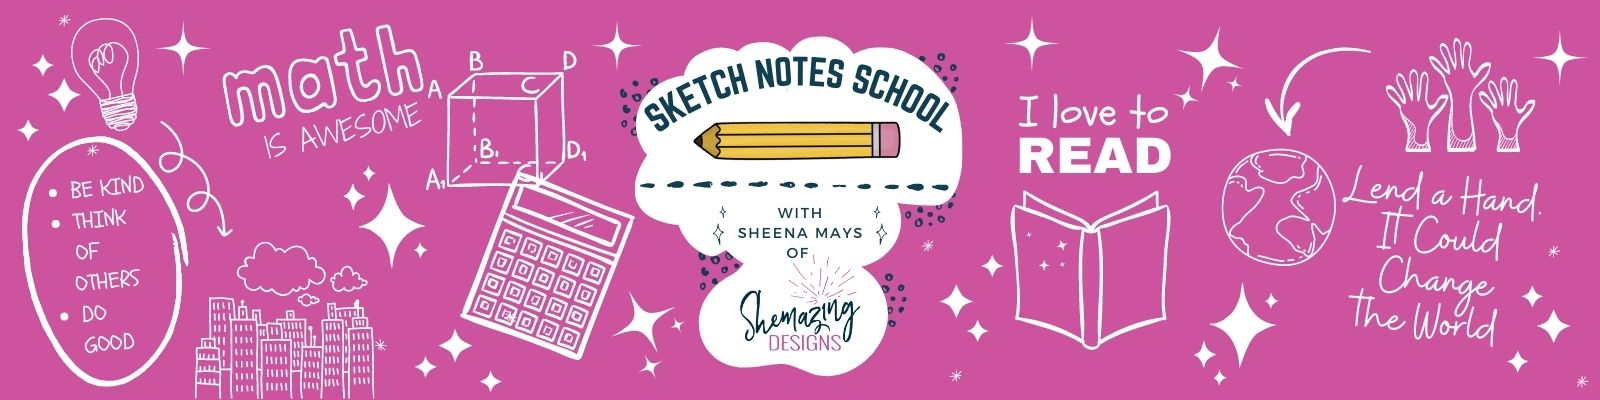 Sketch Notes School with Sheena Mays banner